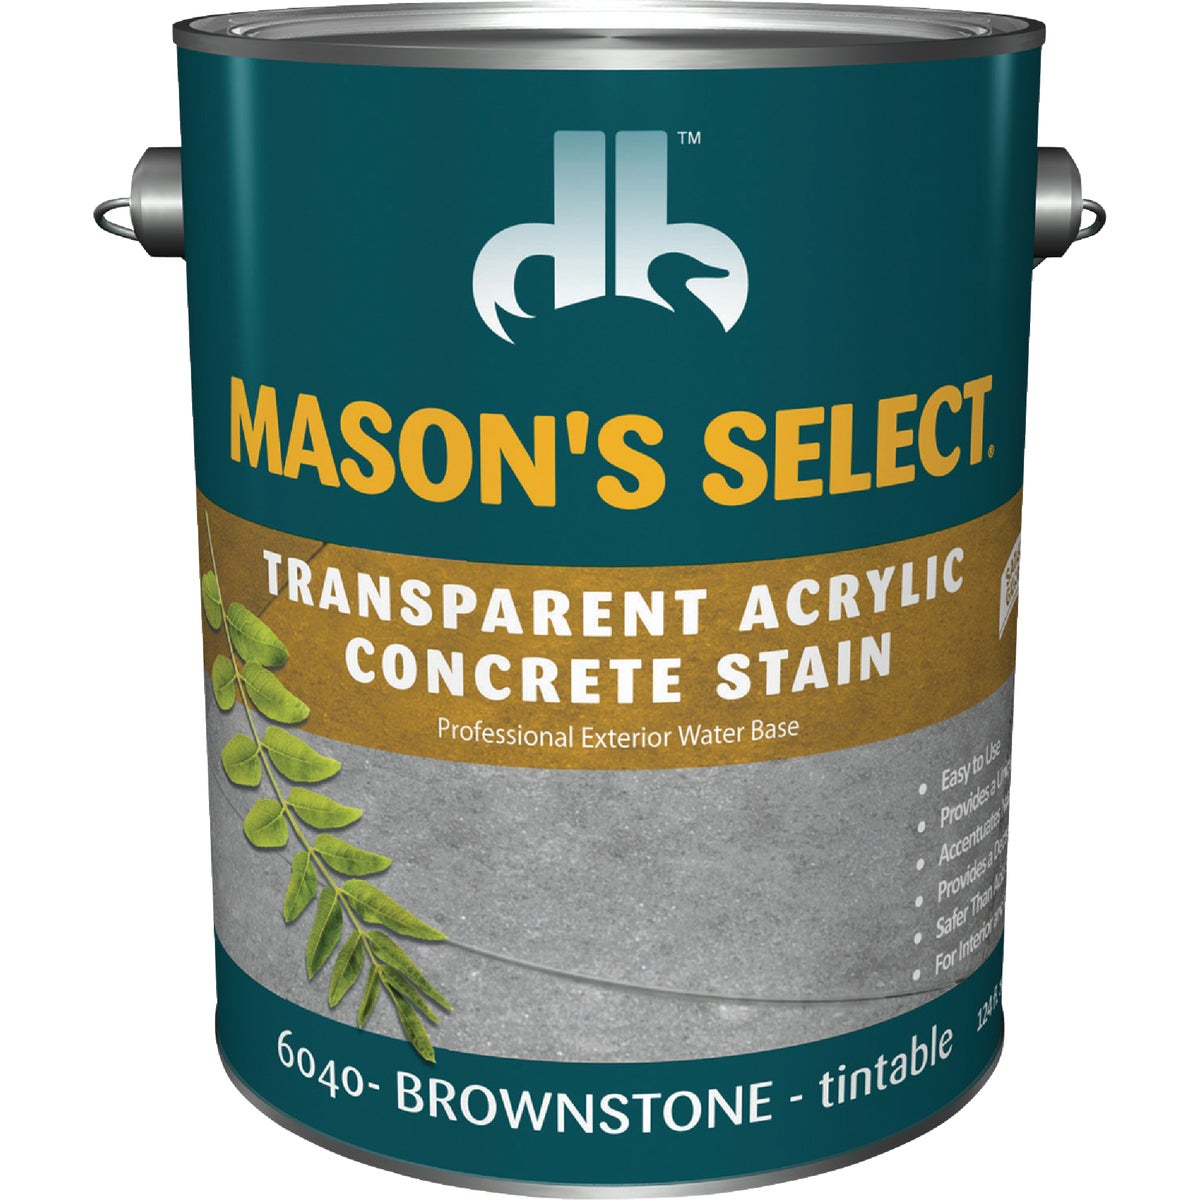 BRWNSTONE CONCRETE STAIN - DB0060404-16 by Duckback Prod